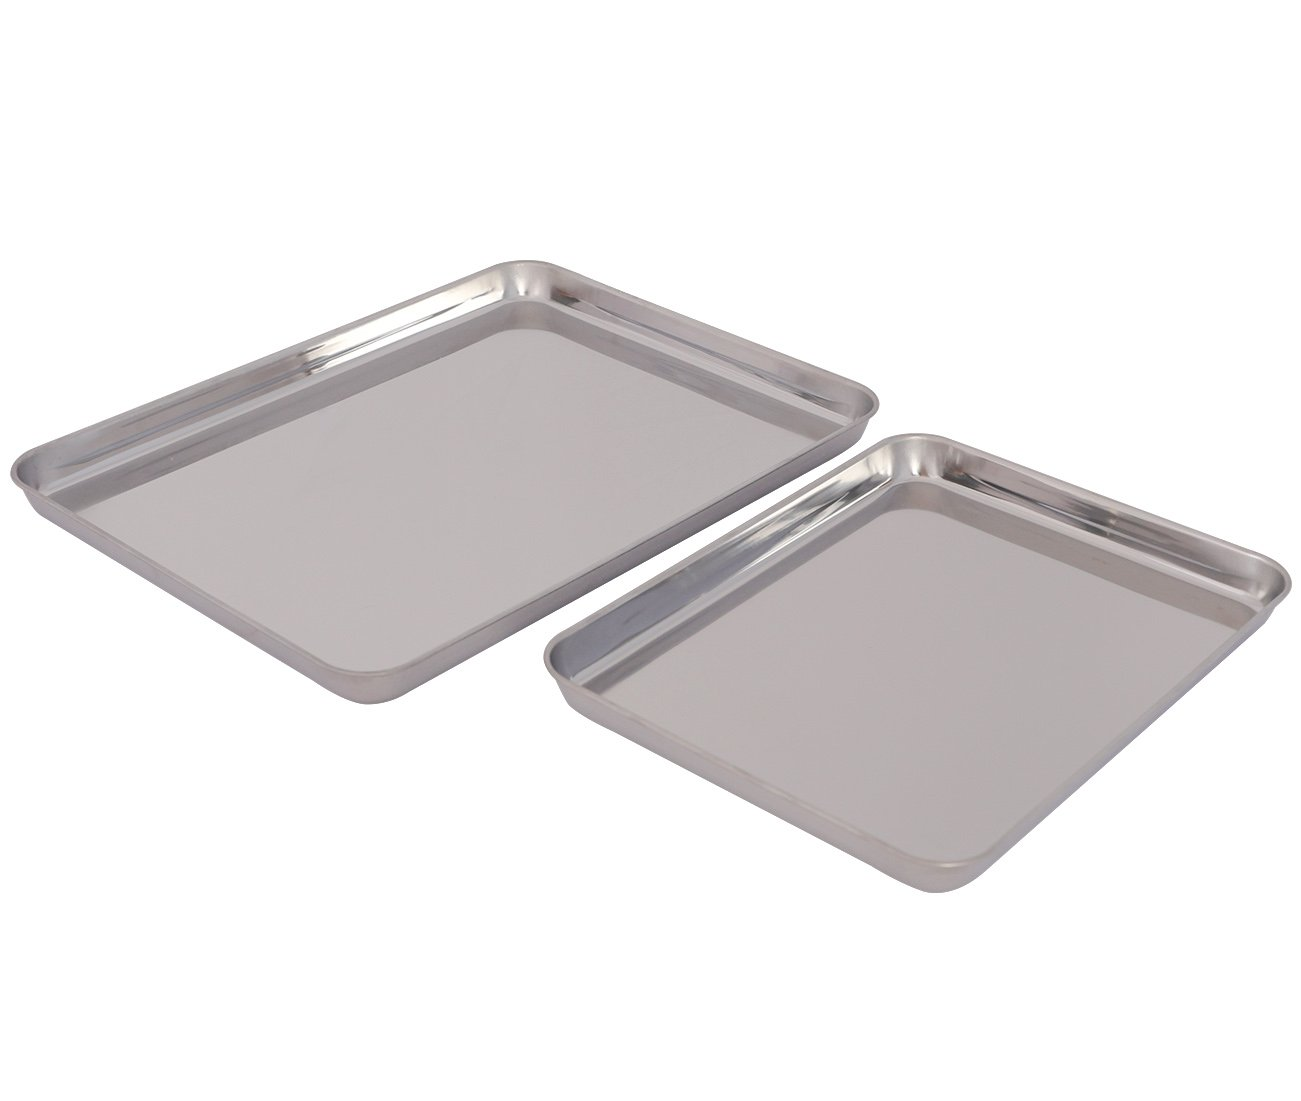 TQVAI Stainless Steel Baking Cookies Sheet Jelly Roll Pan Set, Set of 2